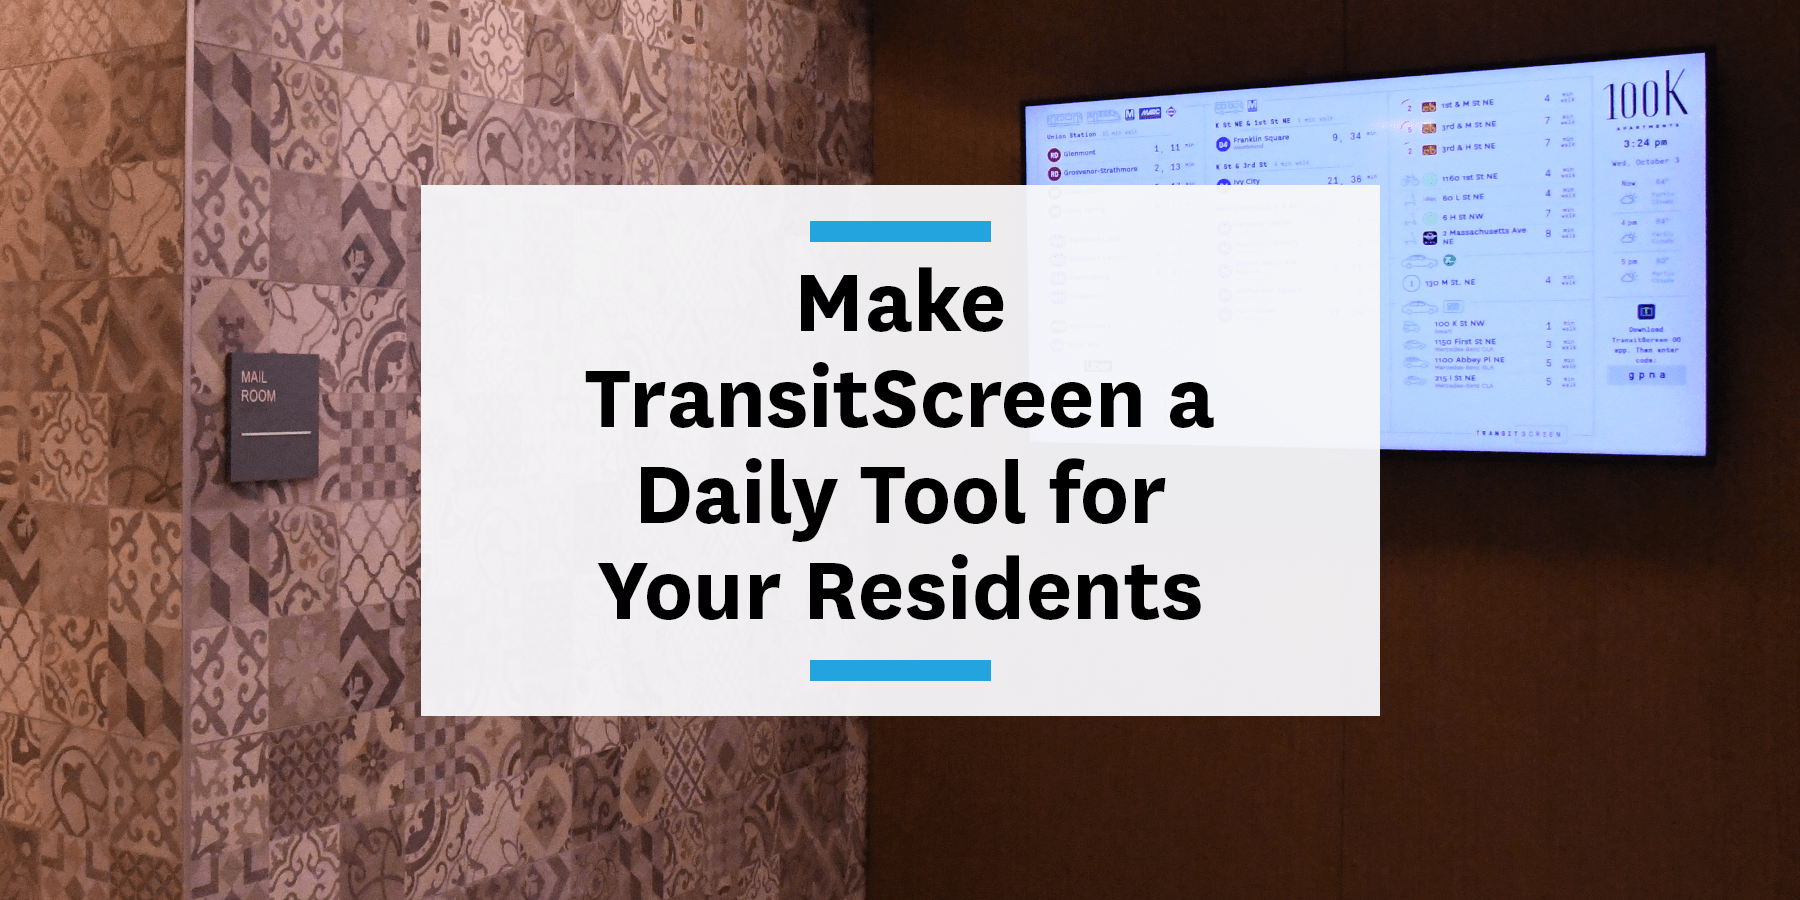 Feature image for making TransitScreen a daily tool for your residents